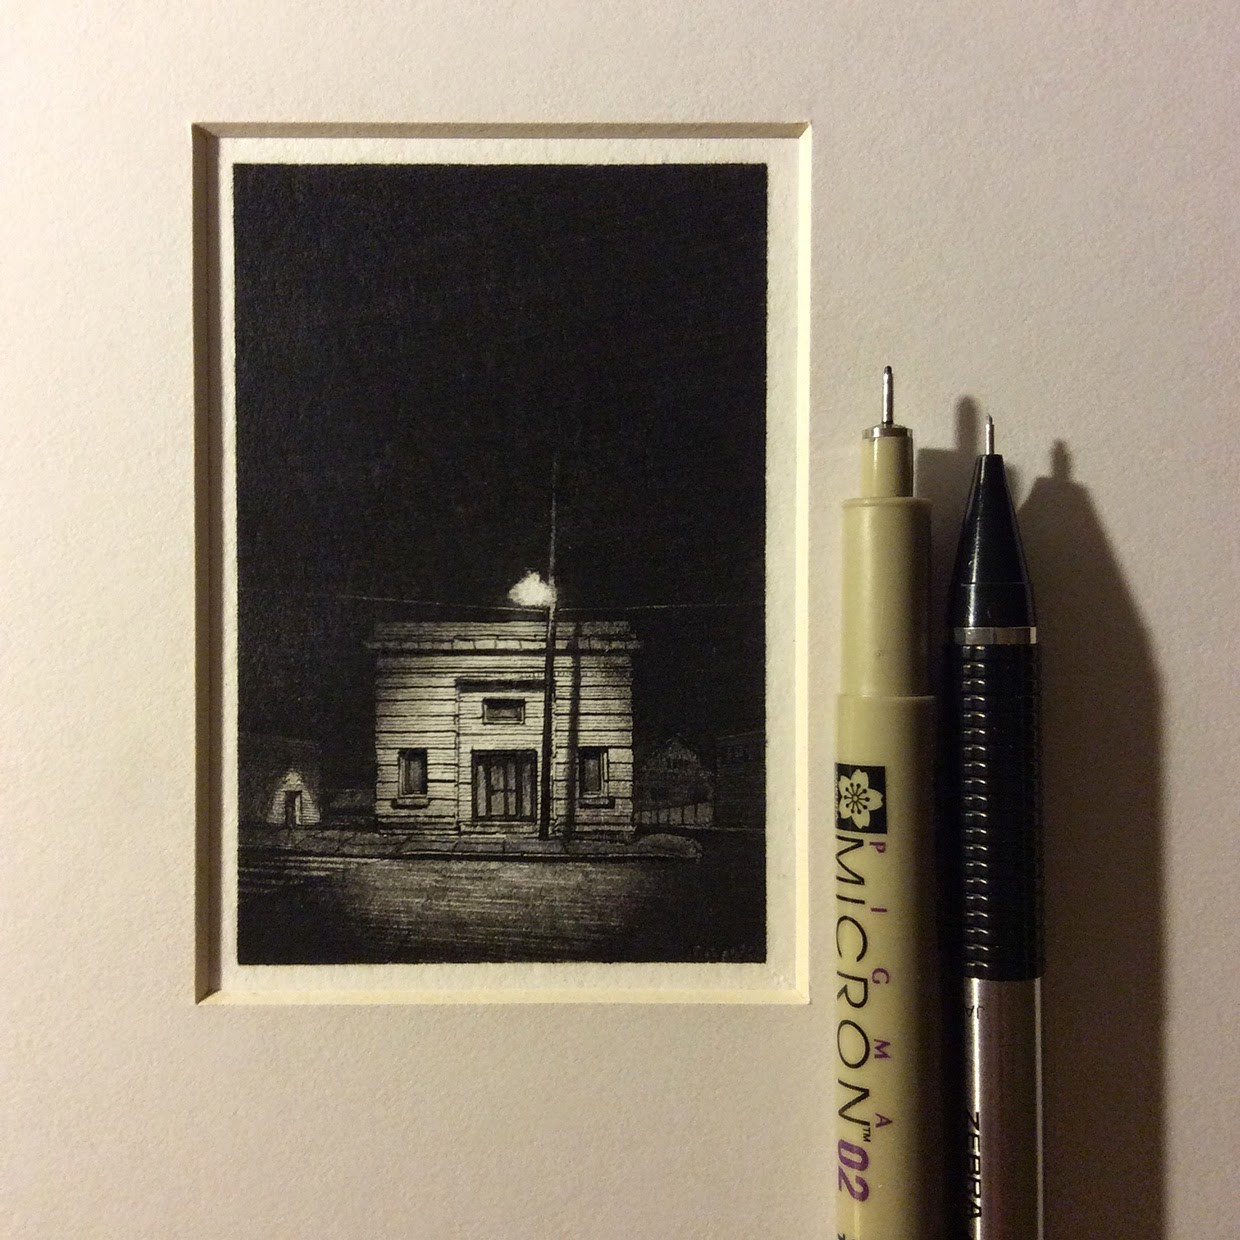 05-Taylor-Mazerhas-Miniature-Pencil-and-Ink-Drawings-with-a-lot-of-Detail-www-designstack-co